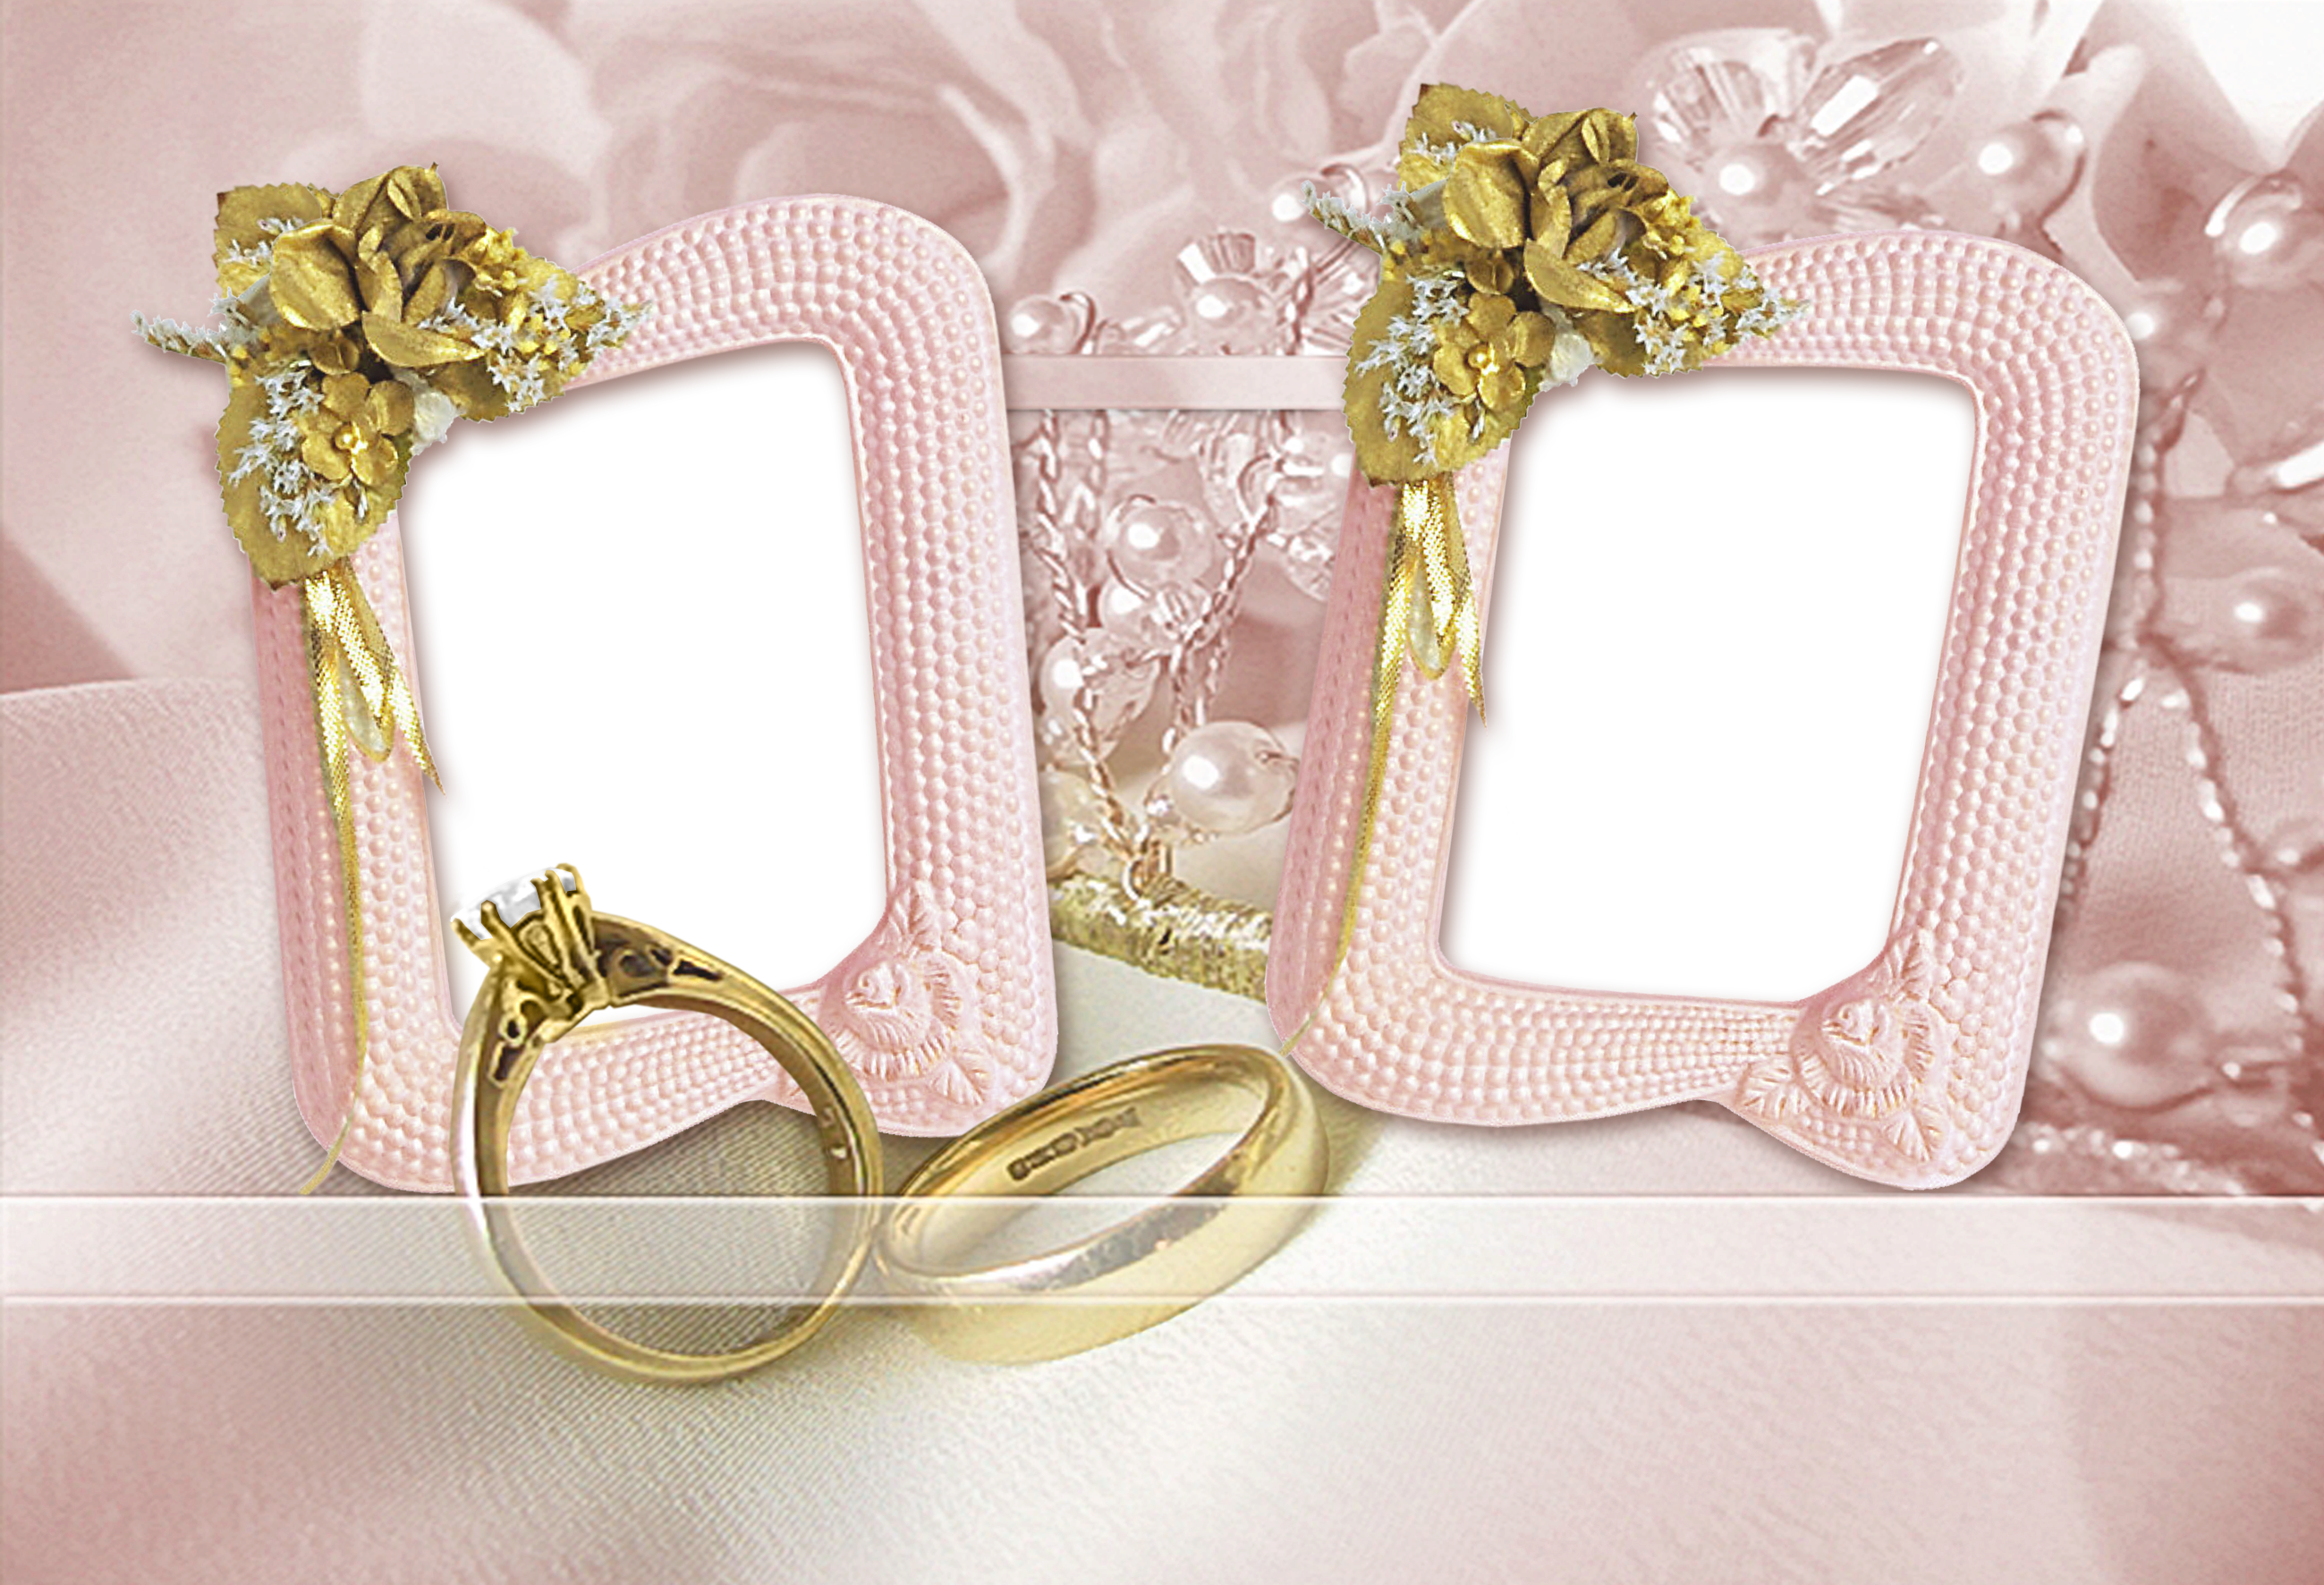 Large Transparent Wedding Frame with Rings   Things to Wear   Pinterest